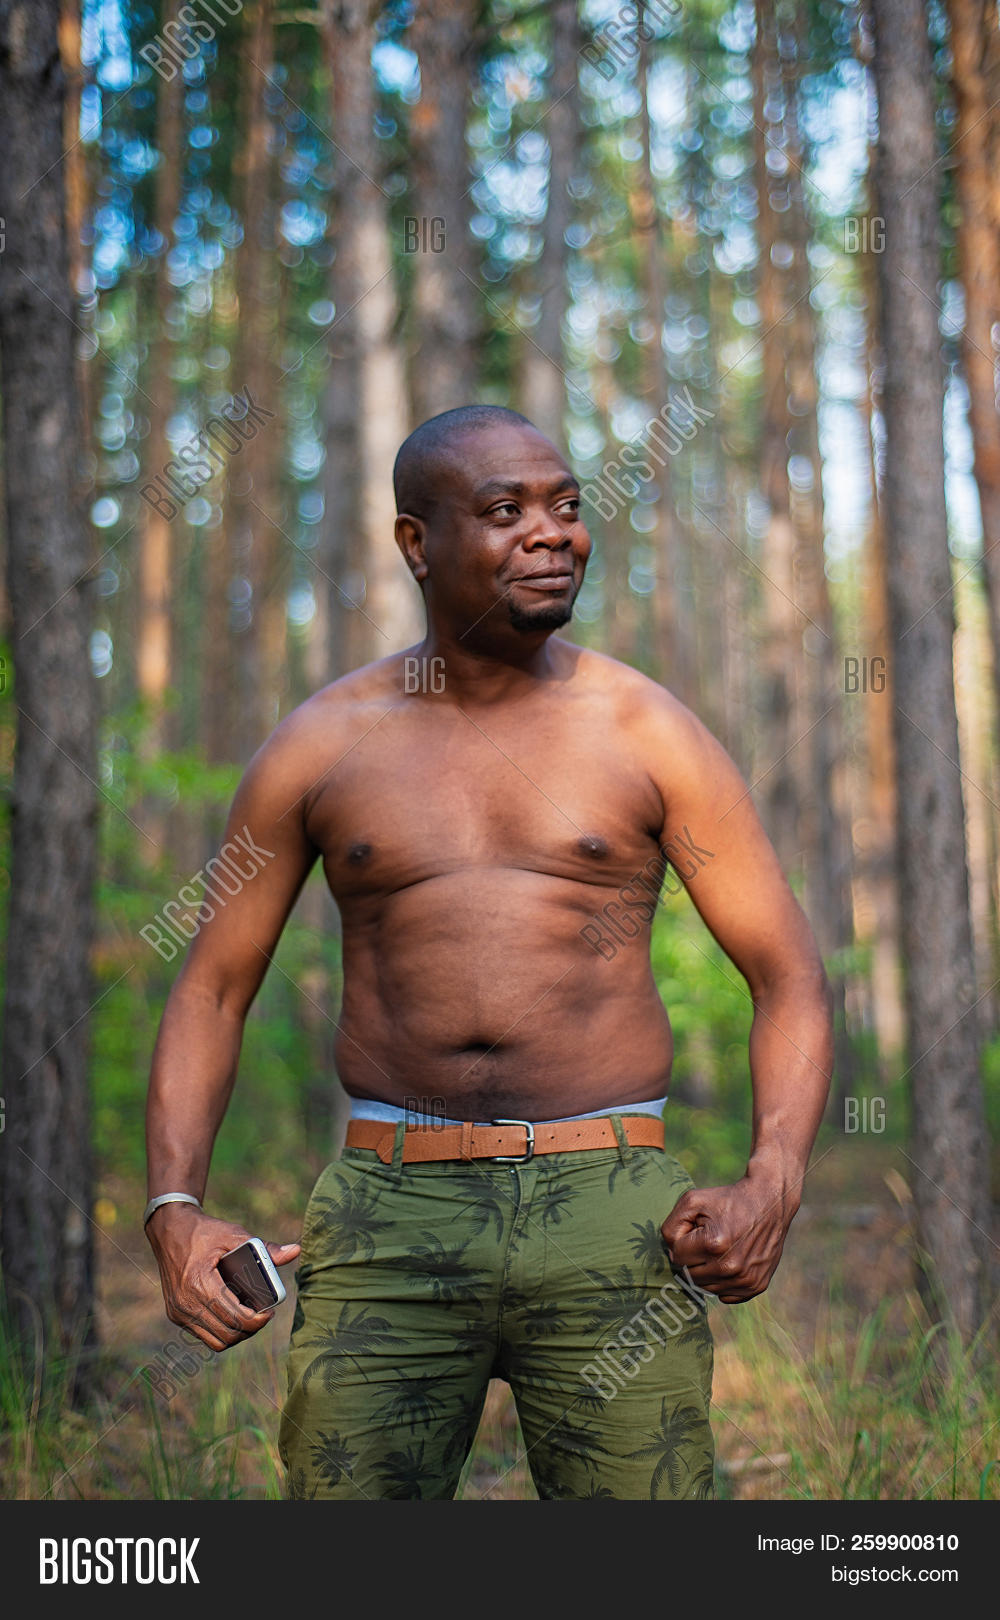 Fat Black Guy With Big Belly Posing In The Woods